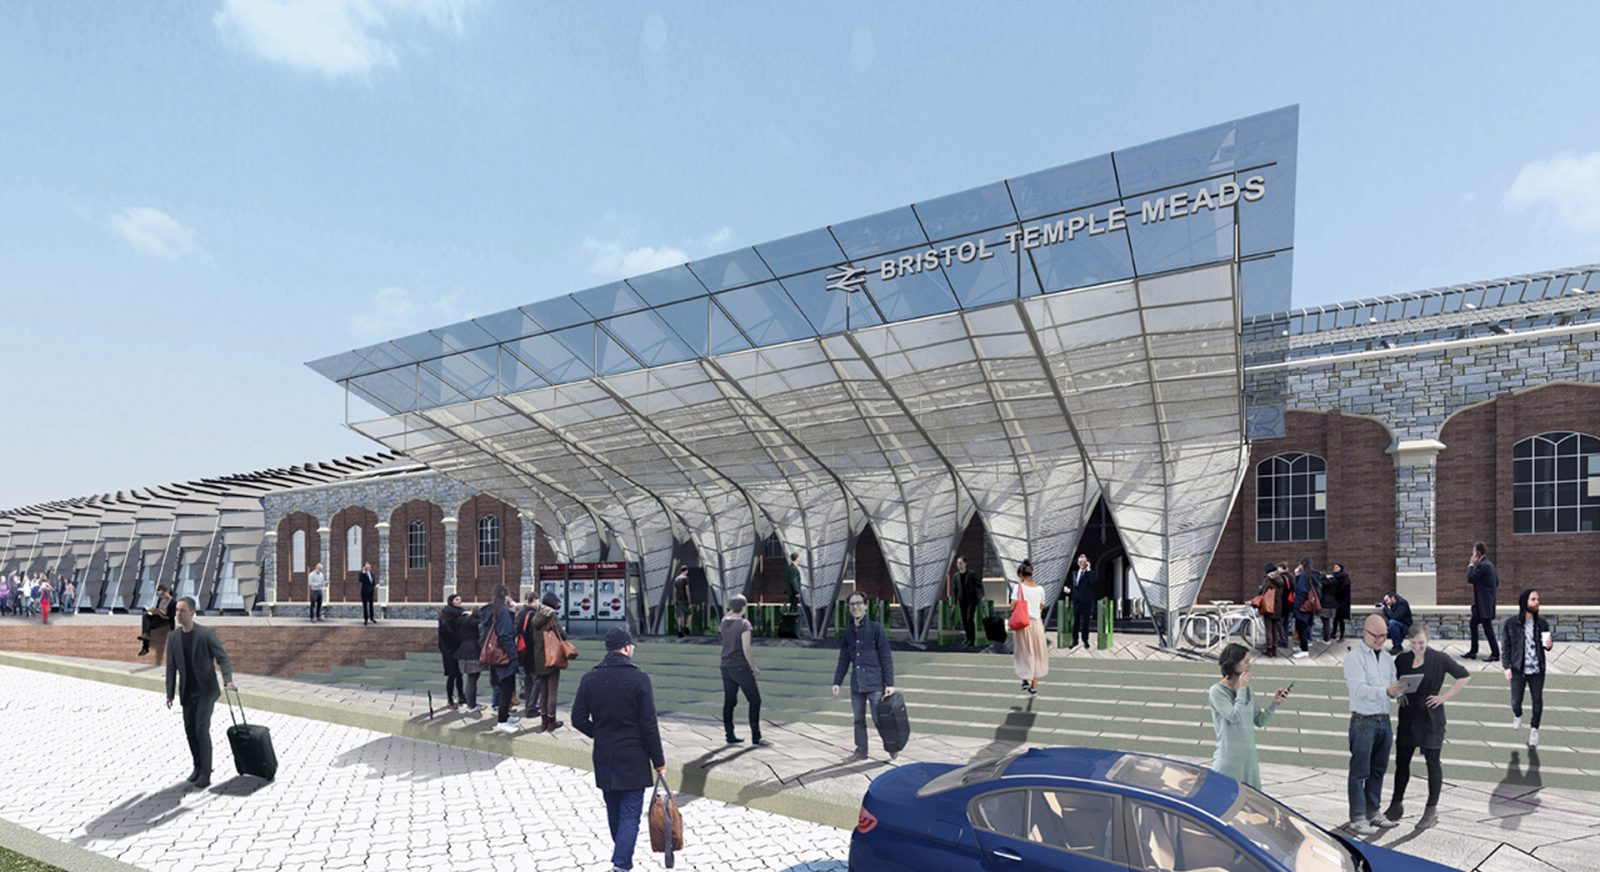 FT bristol temple meads regeneration london platform entrance canopy architects jersey architects12